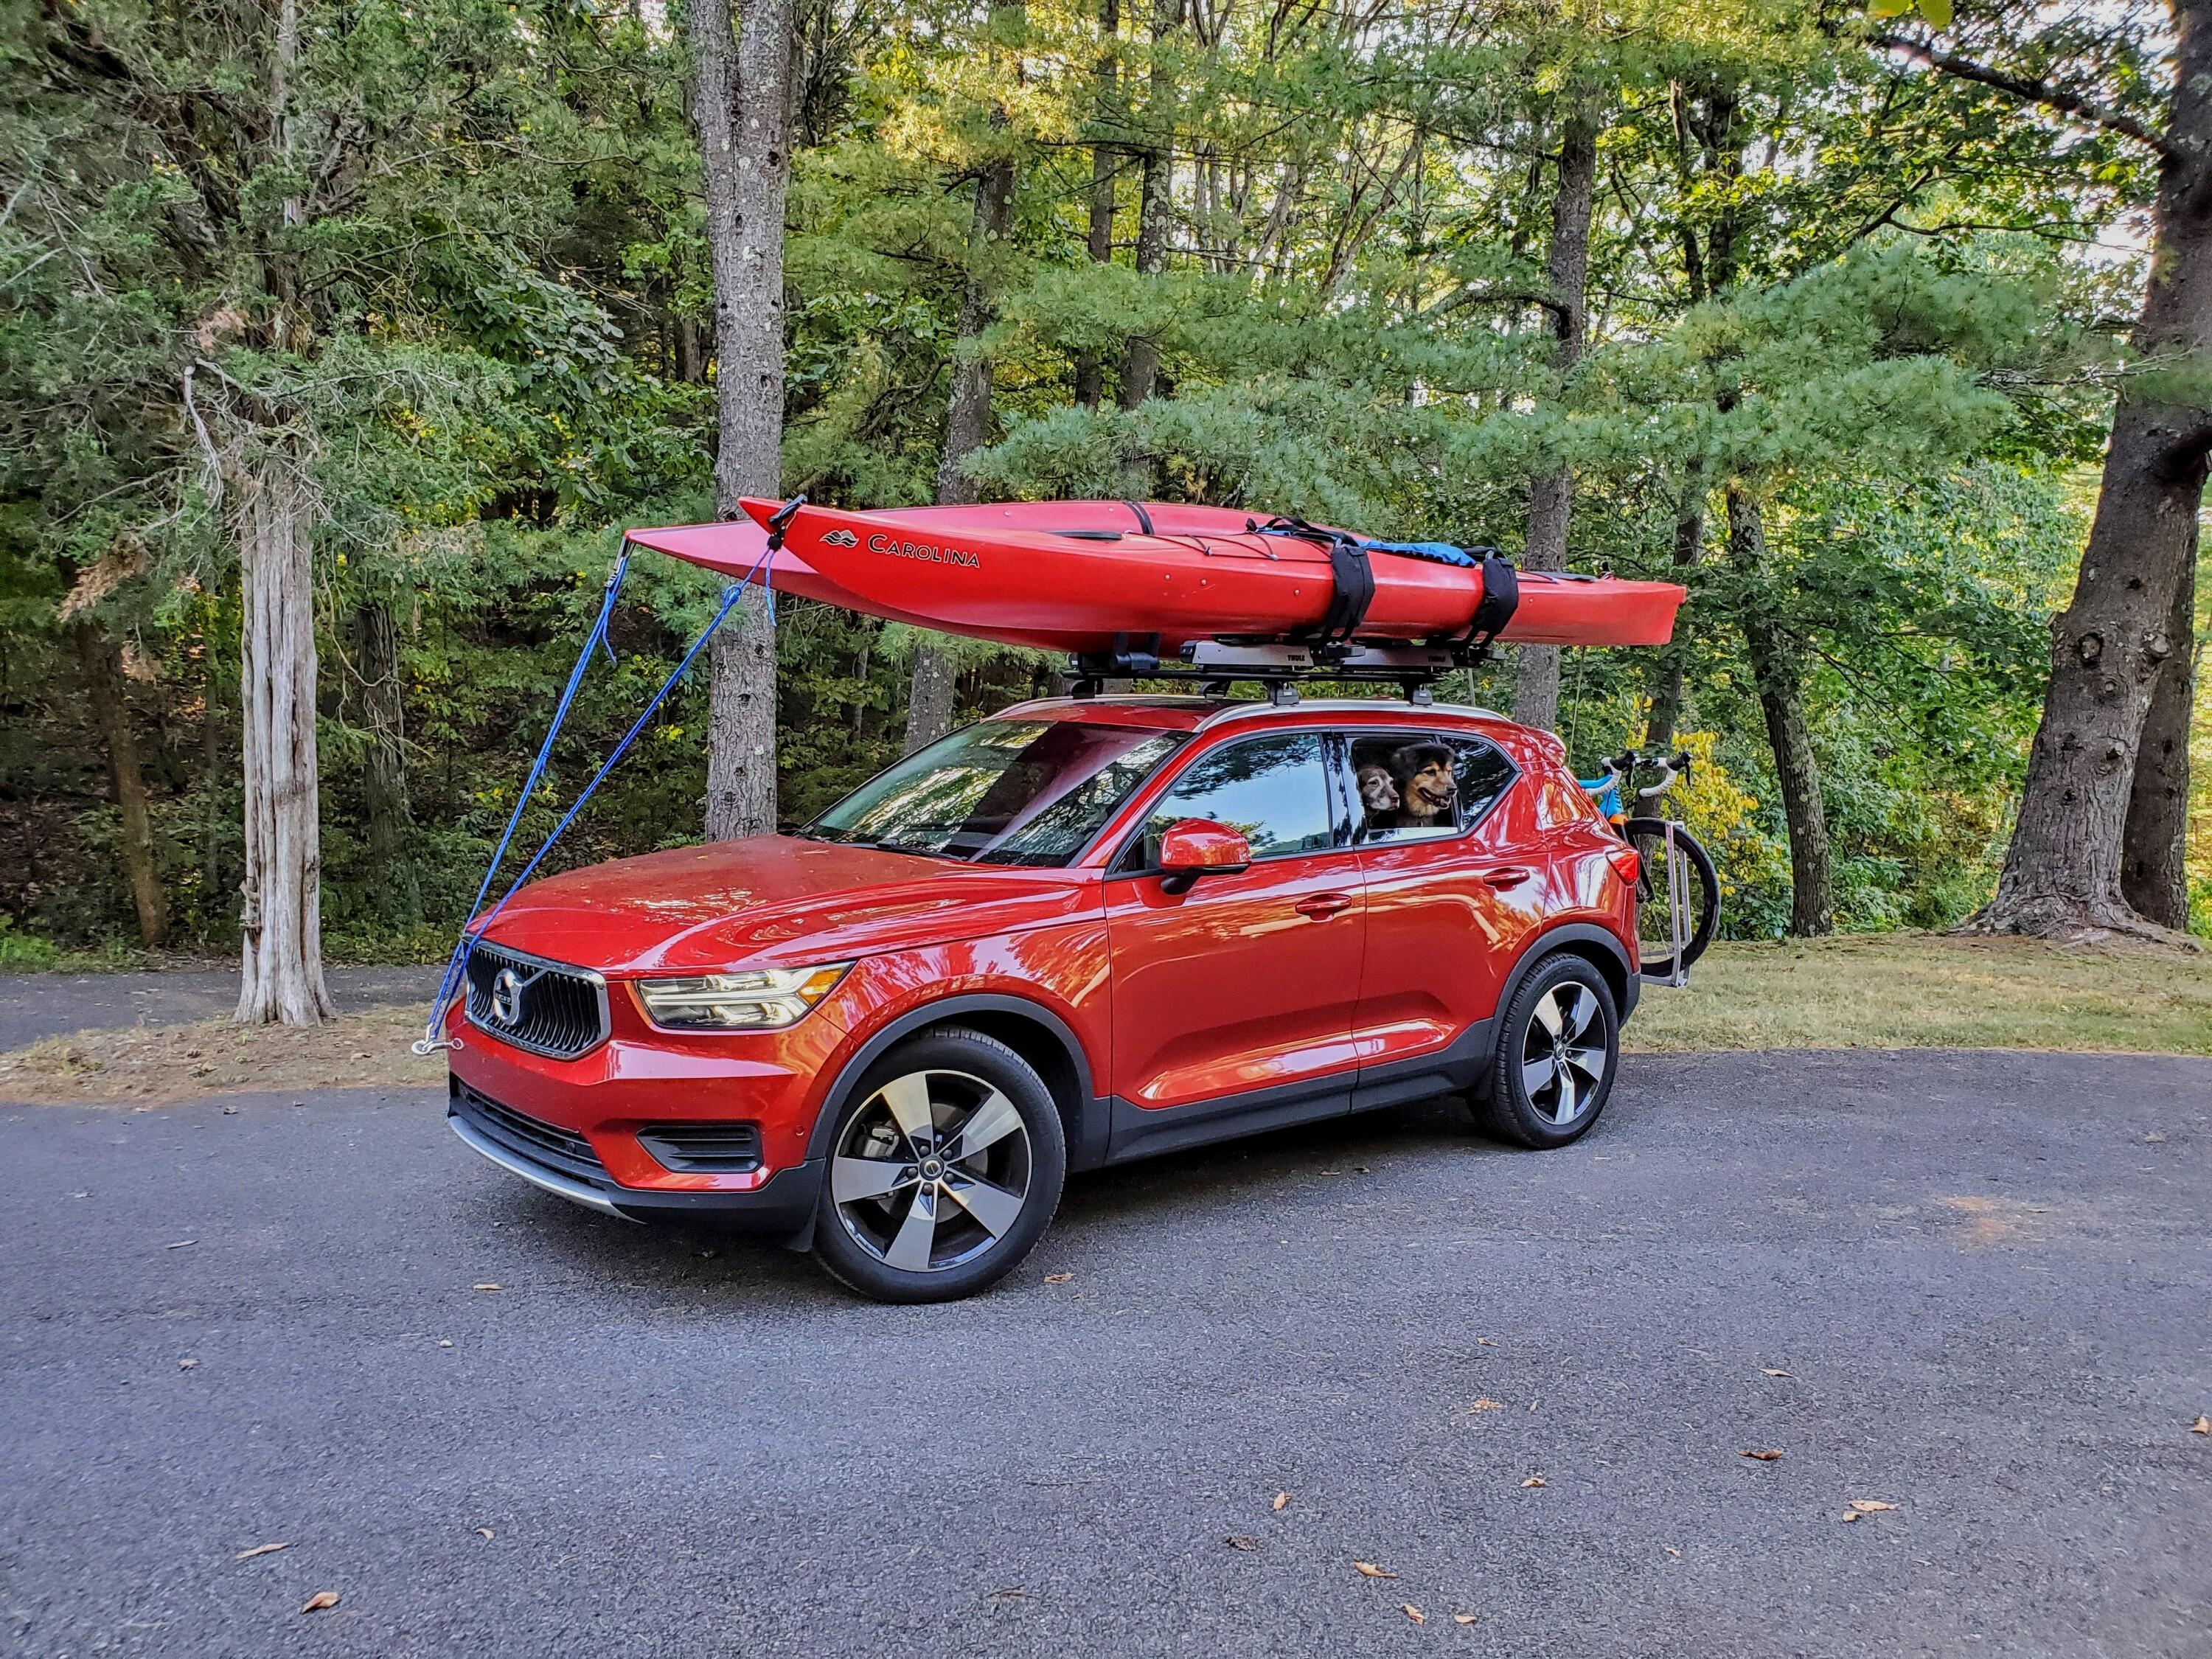 volvo-xc40-kayak-rack-02